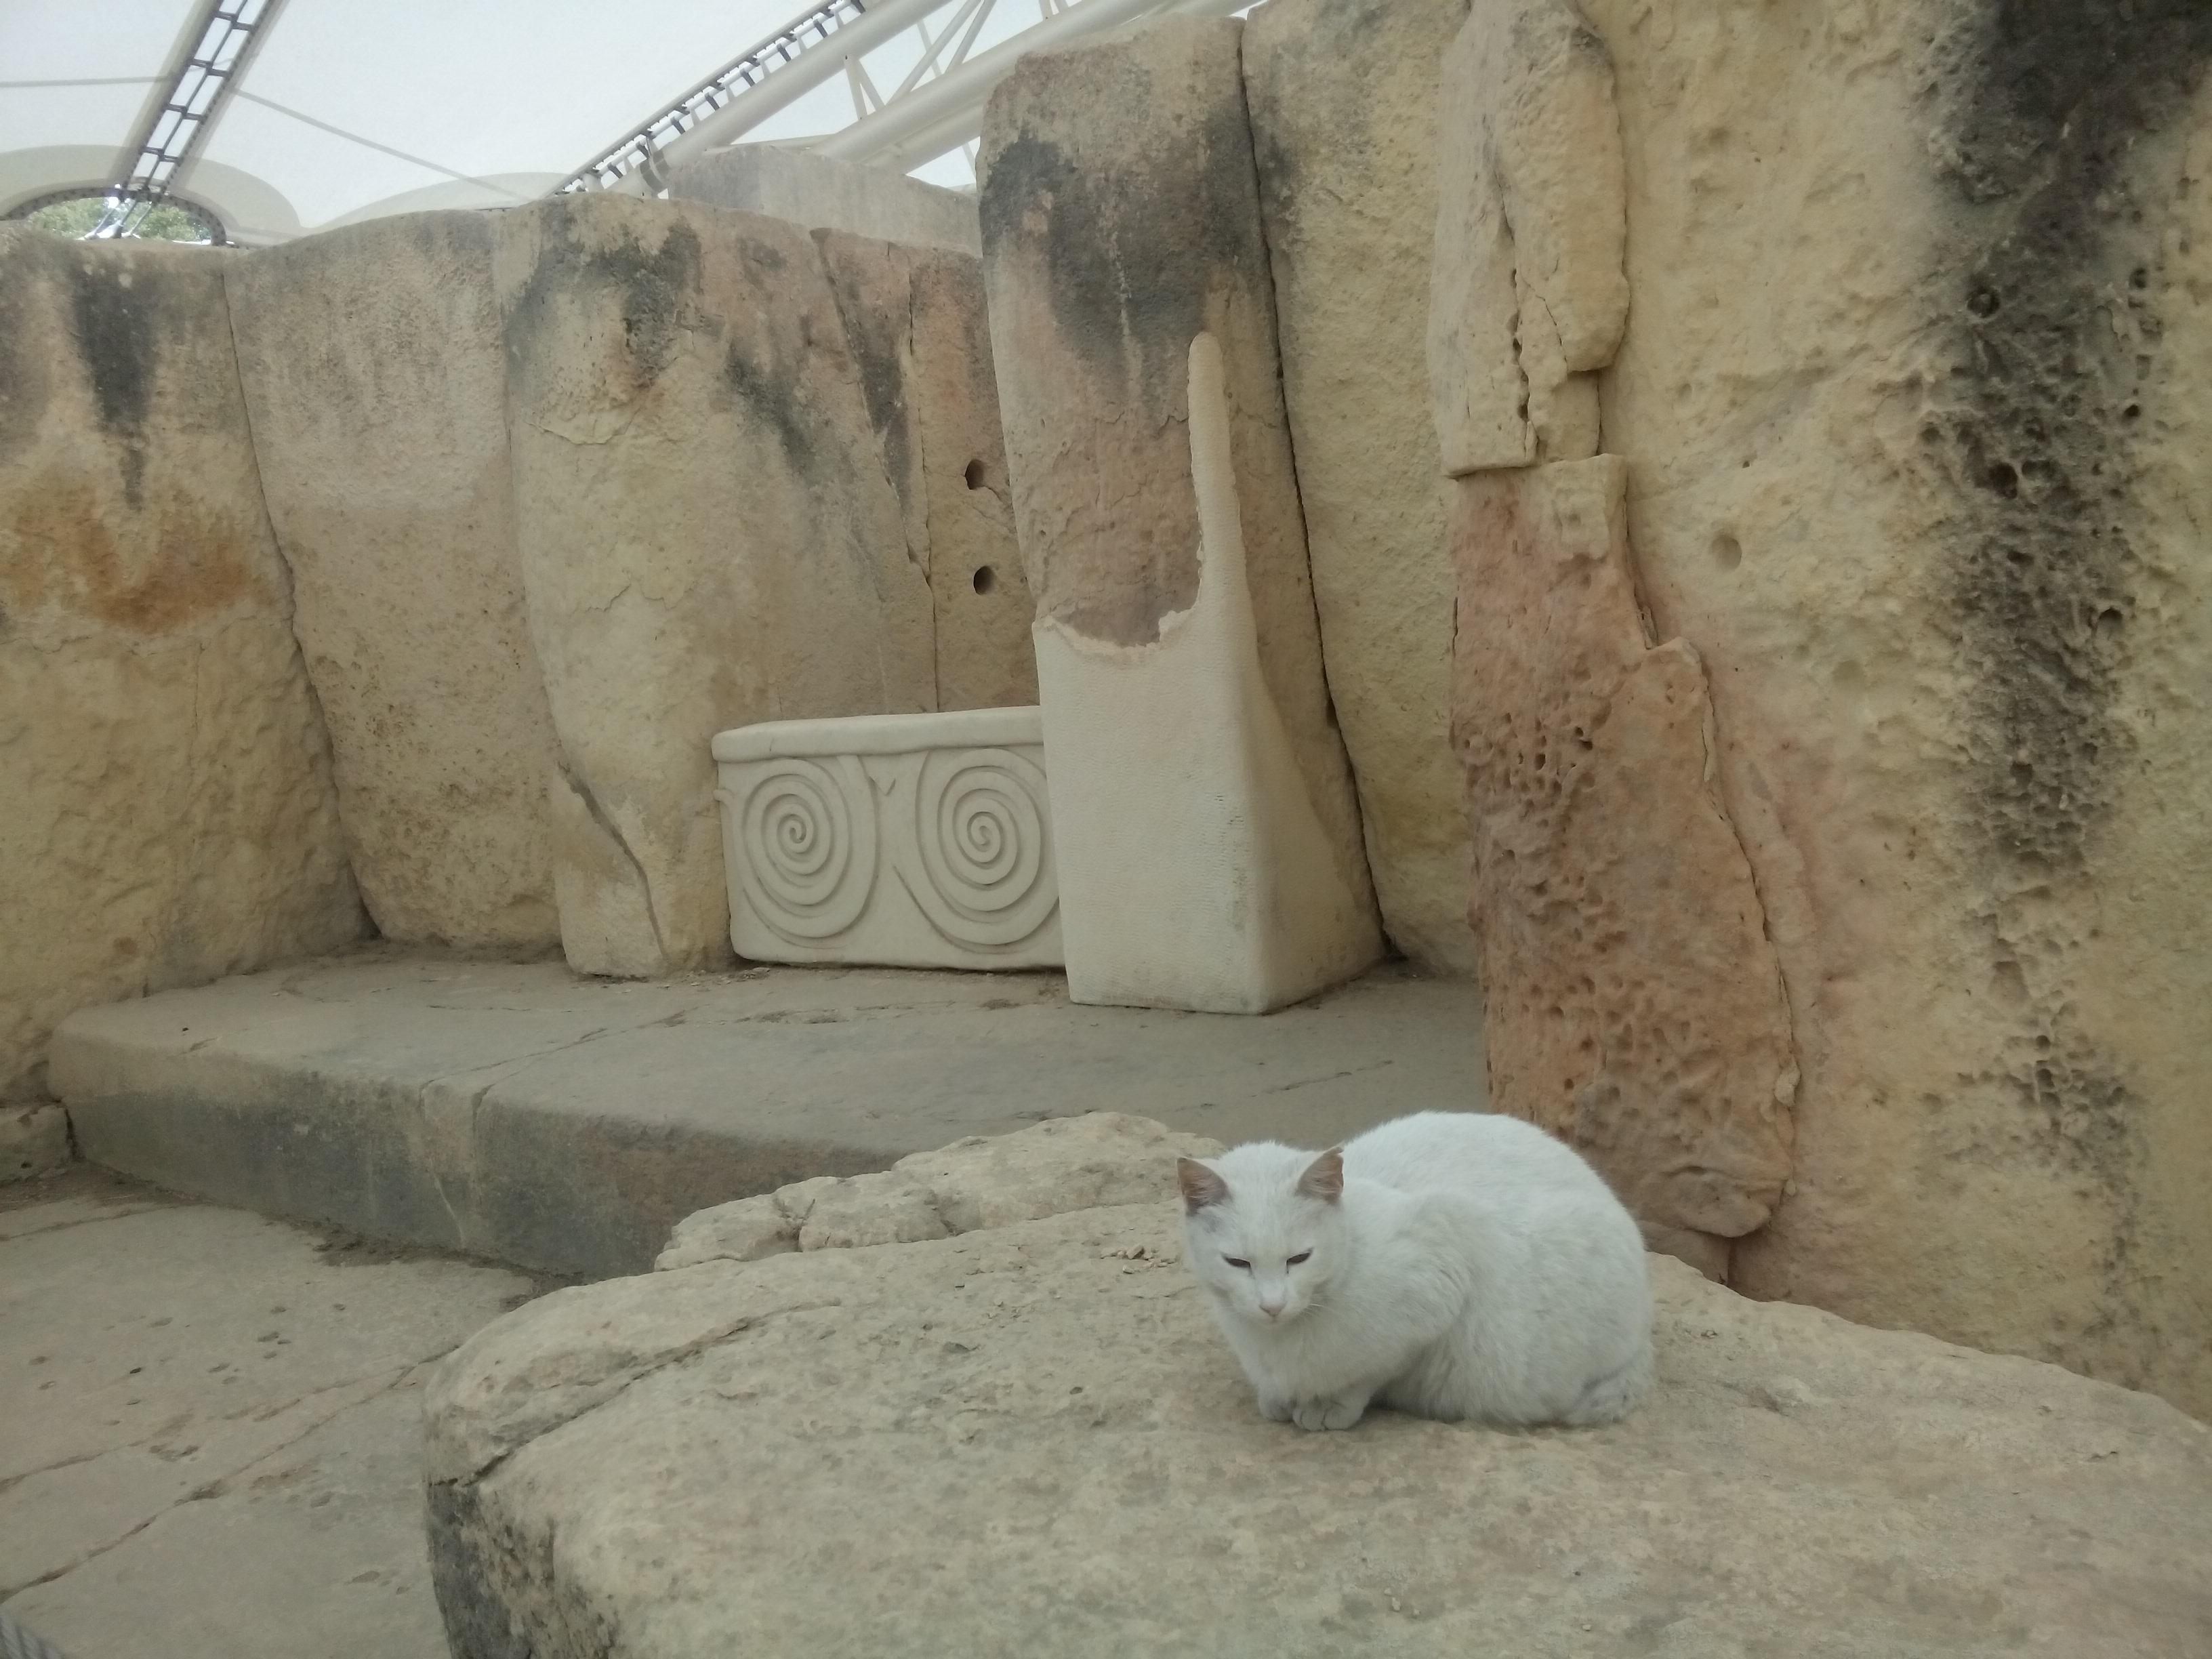 A scraggedy white cat sits amongs ancient sandstone temple ruins